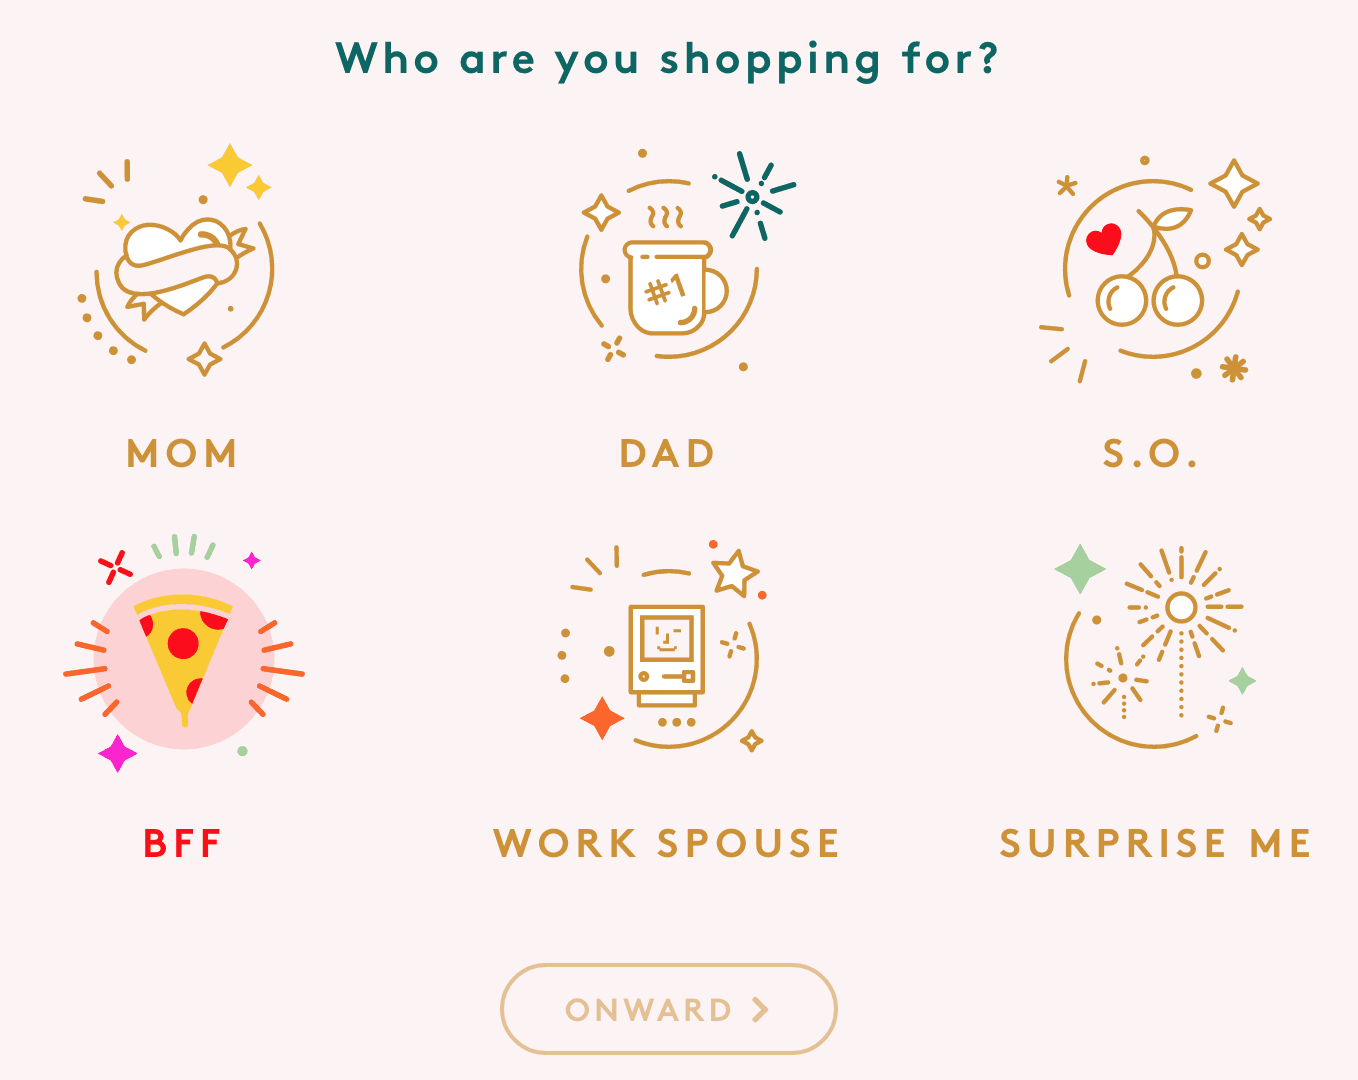 A screenshot of Refinery29's Gift Curator shopping options including Mom, Dad, S.O., BFF, Work Spouse, and Surprise Me